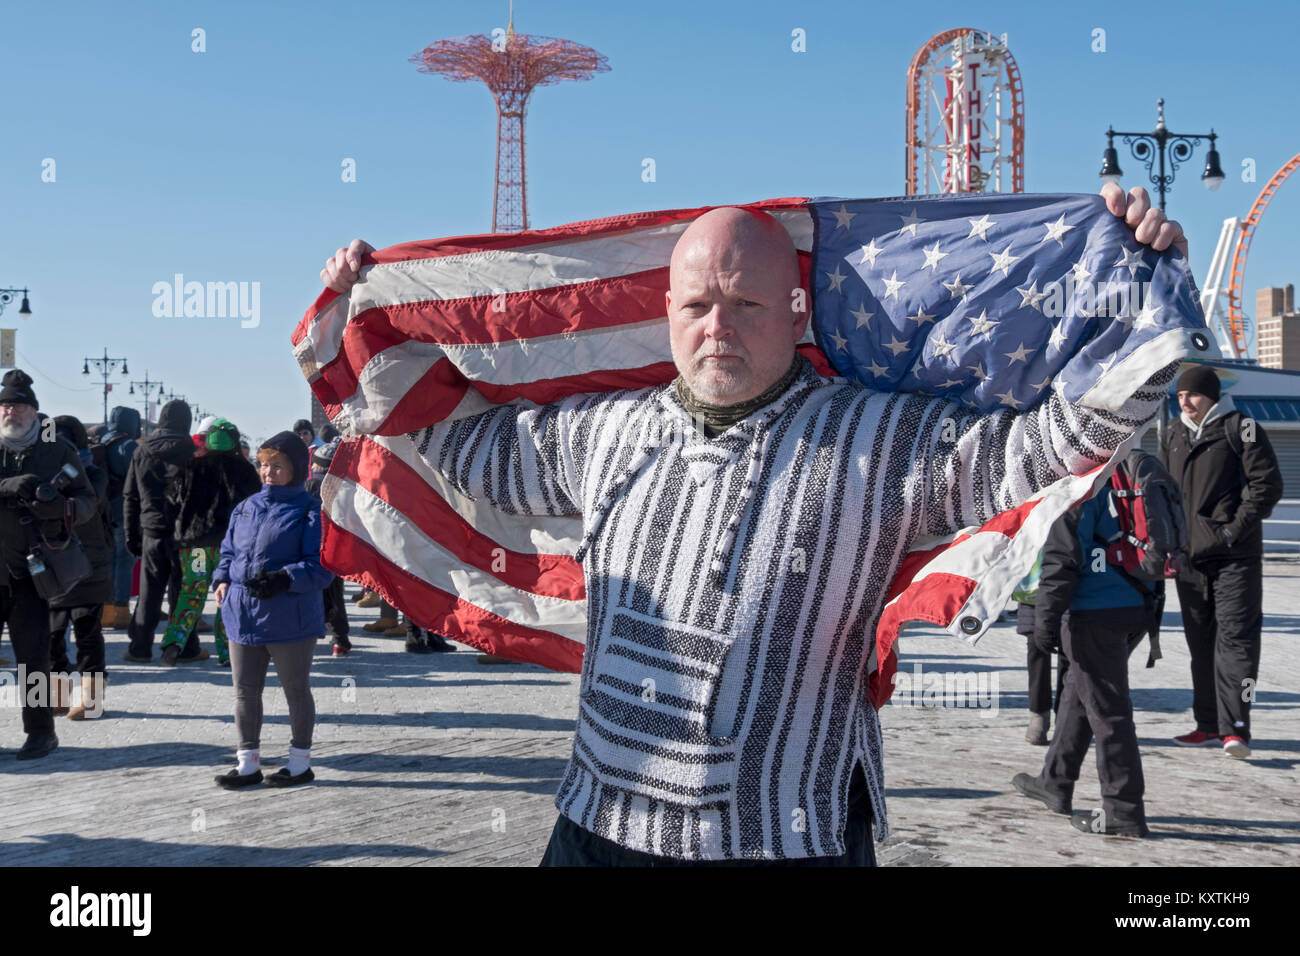 A man with an American flag on the boardwalk prior to the 114th Polar Bear Club New Year's Day swim. - Stock Image